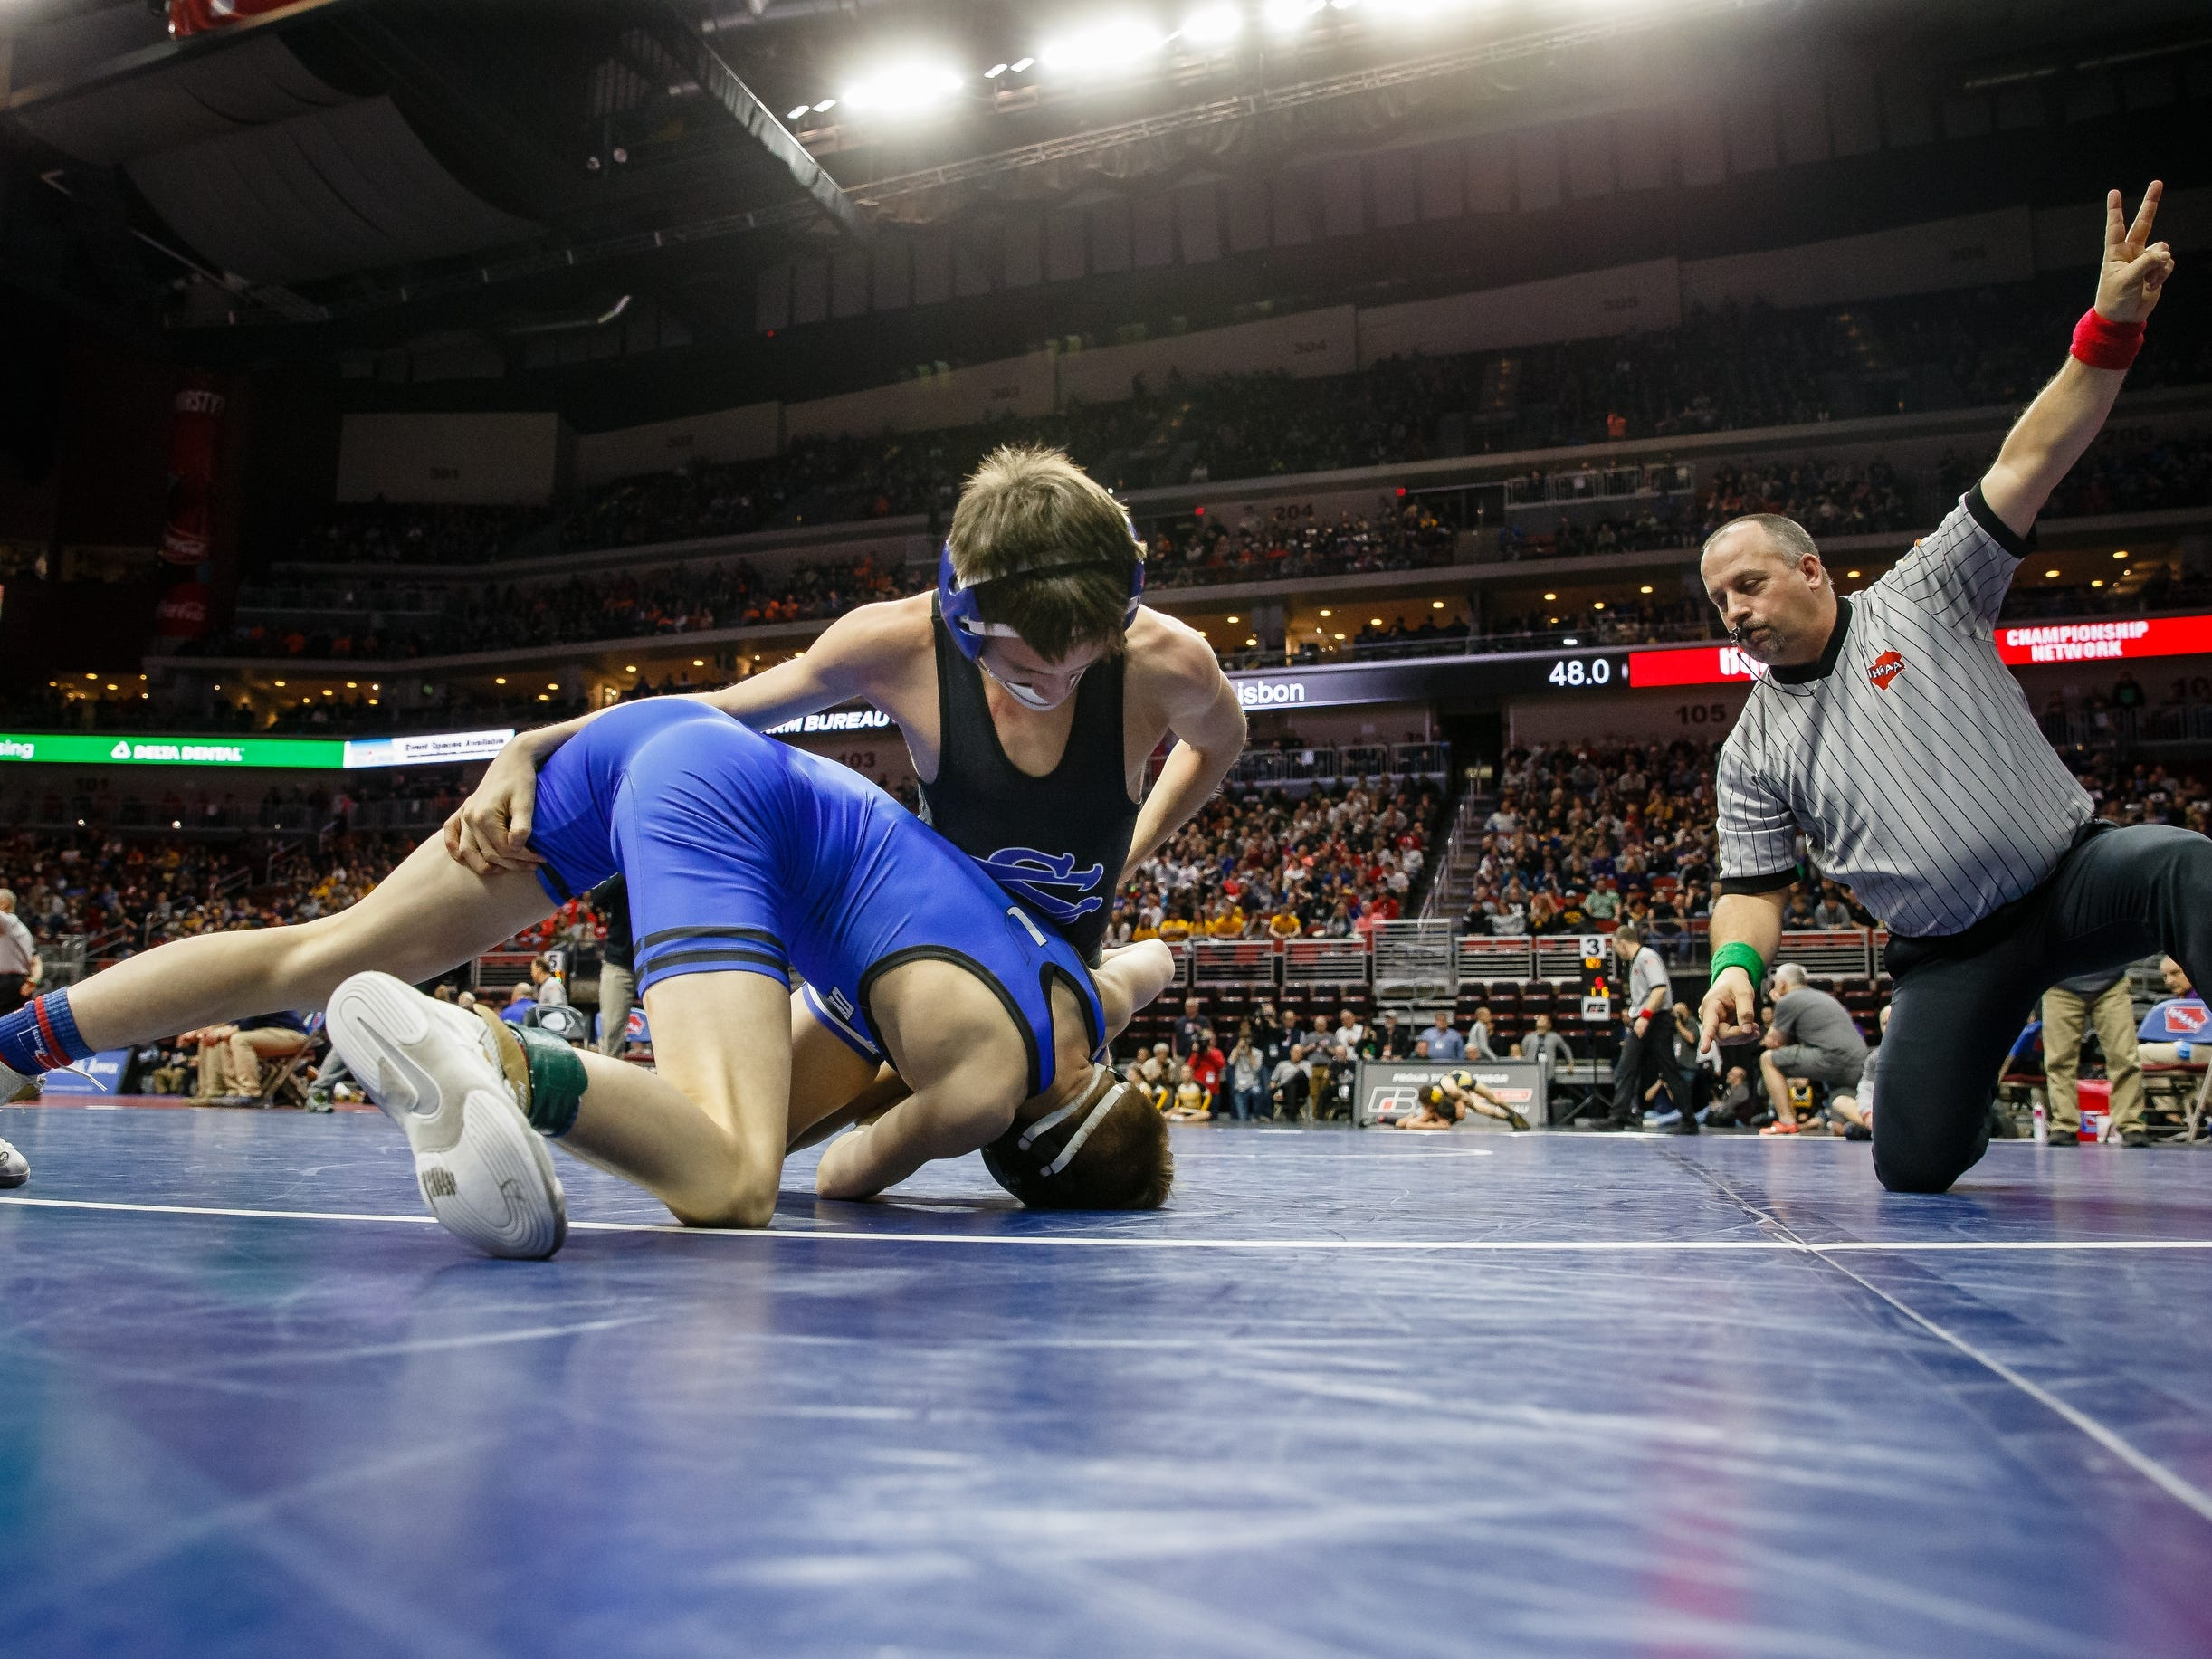 Stevie Barnes of Underwood wrestles Clayton McDonough of Central Springs during their class 1A 106 pound state championship semi-final match on Friday, Feb. 15, 2019 in Des Moines. Barnes advances to the finals with a 4-2 sudden victory.